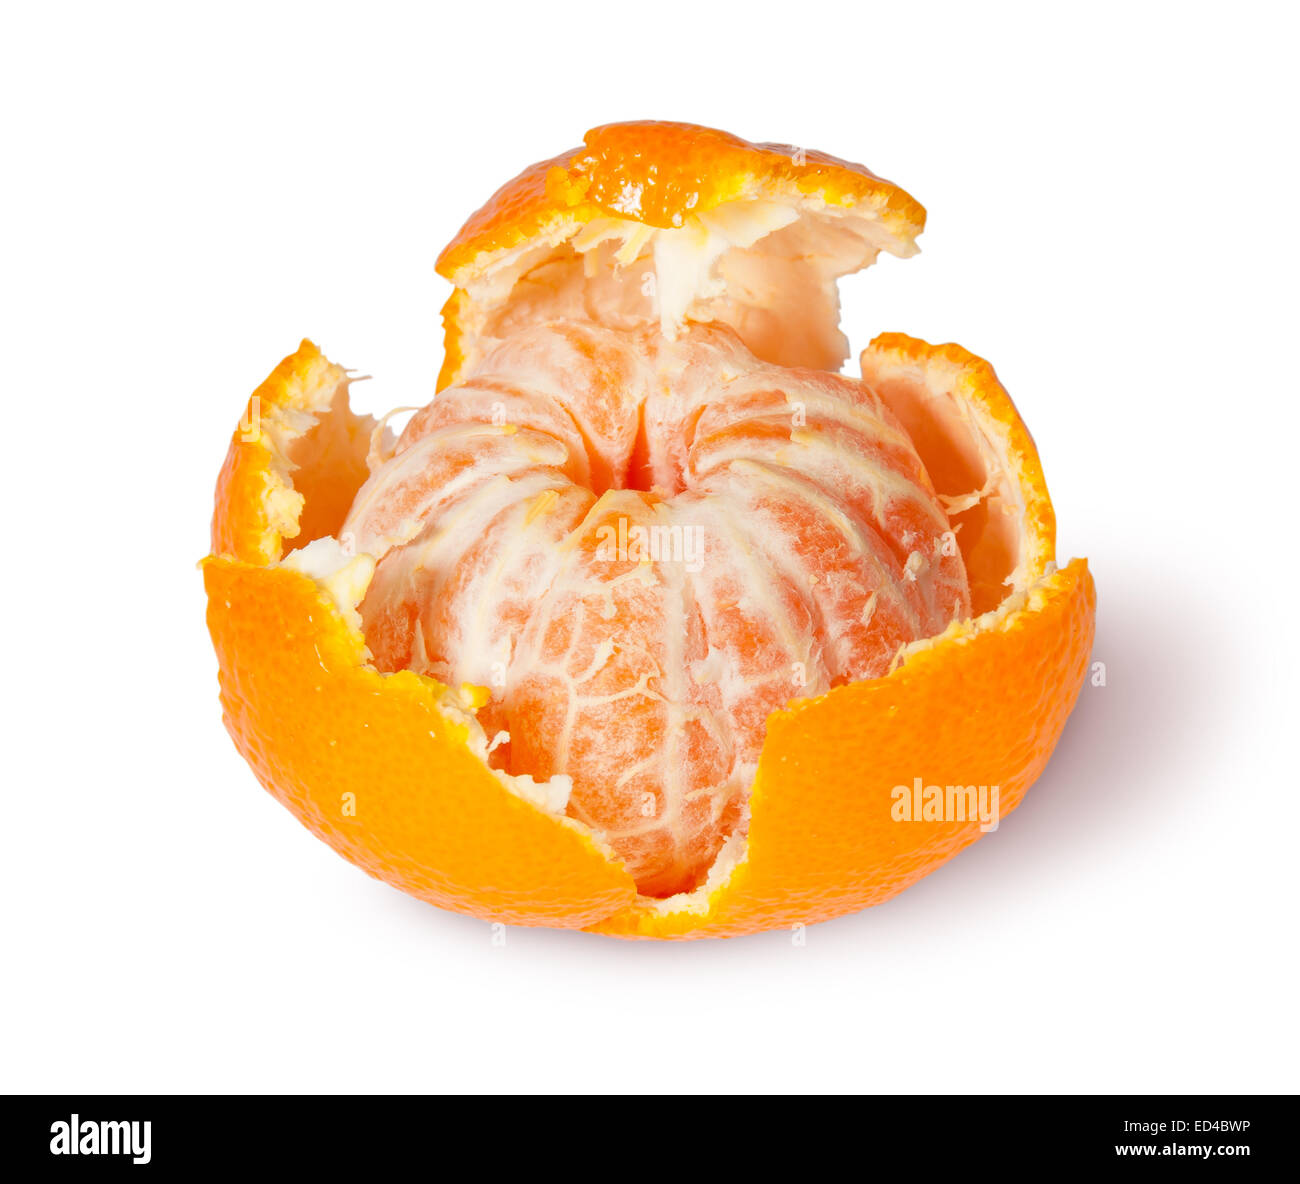 Partially Purified Tangerine Isolated On White Background - Stock Image